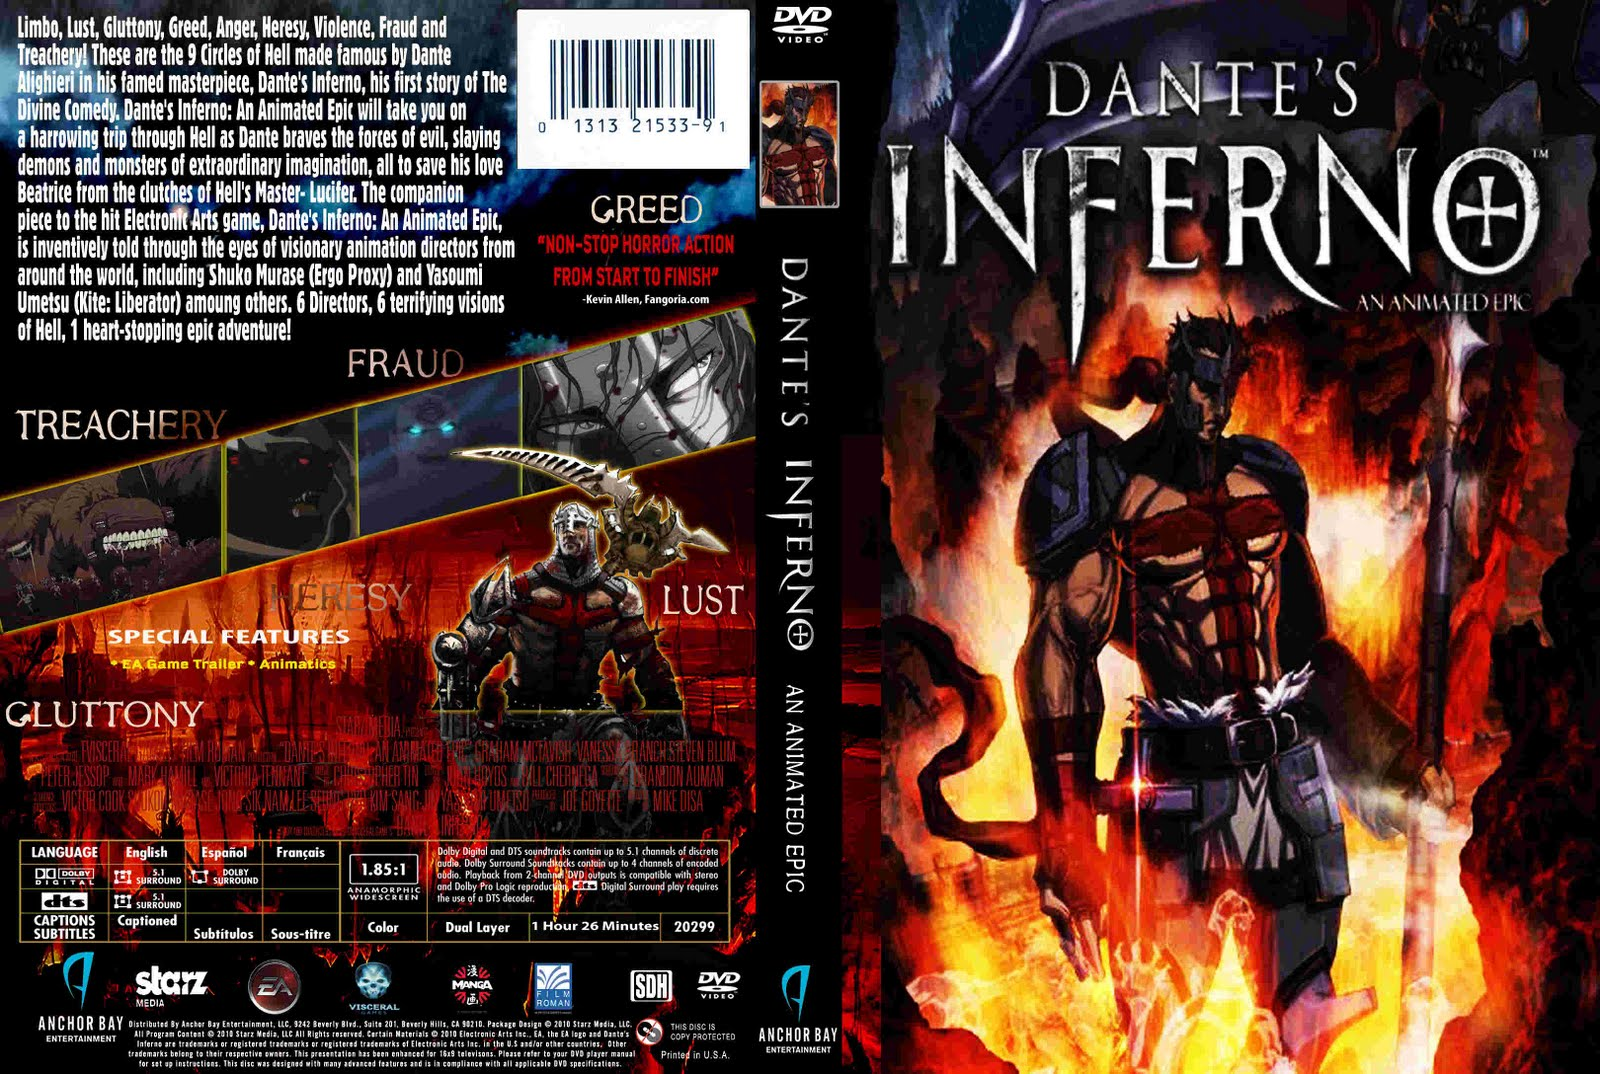 dante's inferno an animated epic Watch video title: dante's inferno: an animated epic (video 2010) 66 /10 want to share imdb's rating on your own site use the html below.